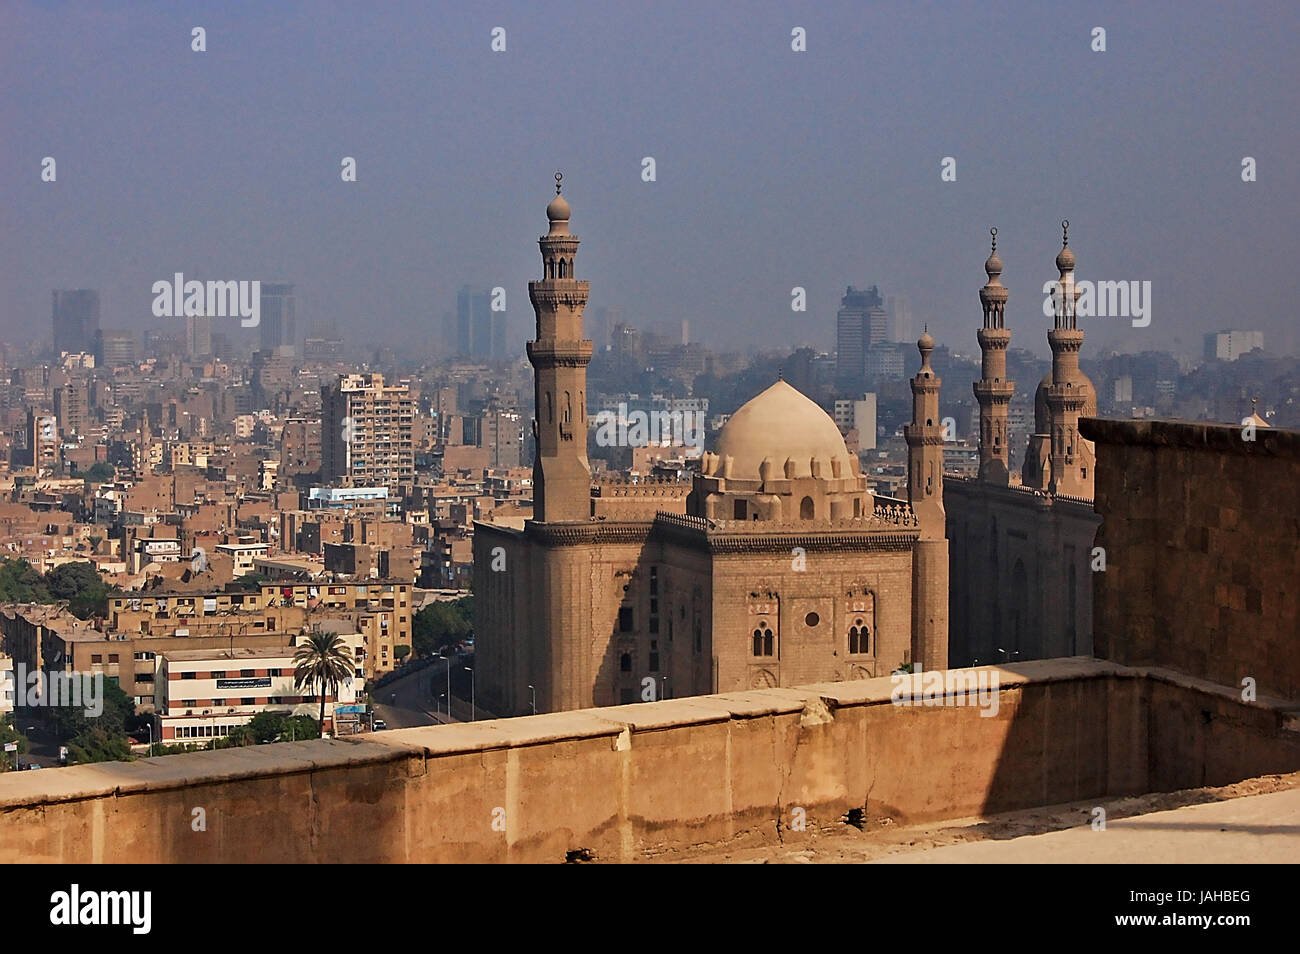 Photograph taken during a travel to Egypt in 2010 - Stock Image